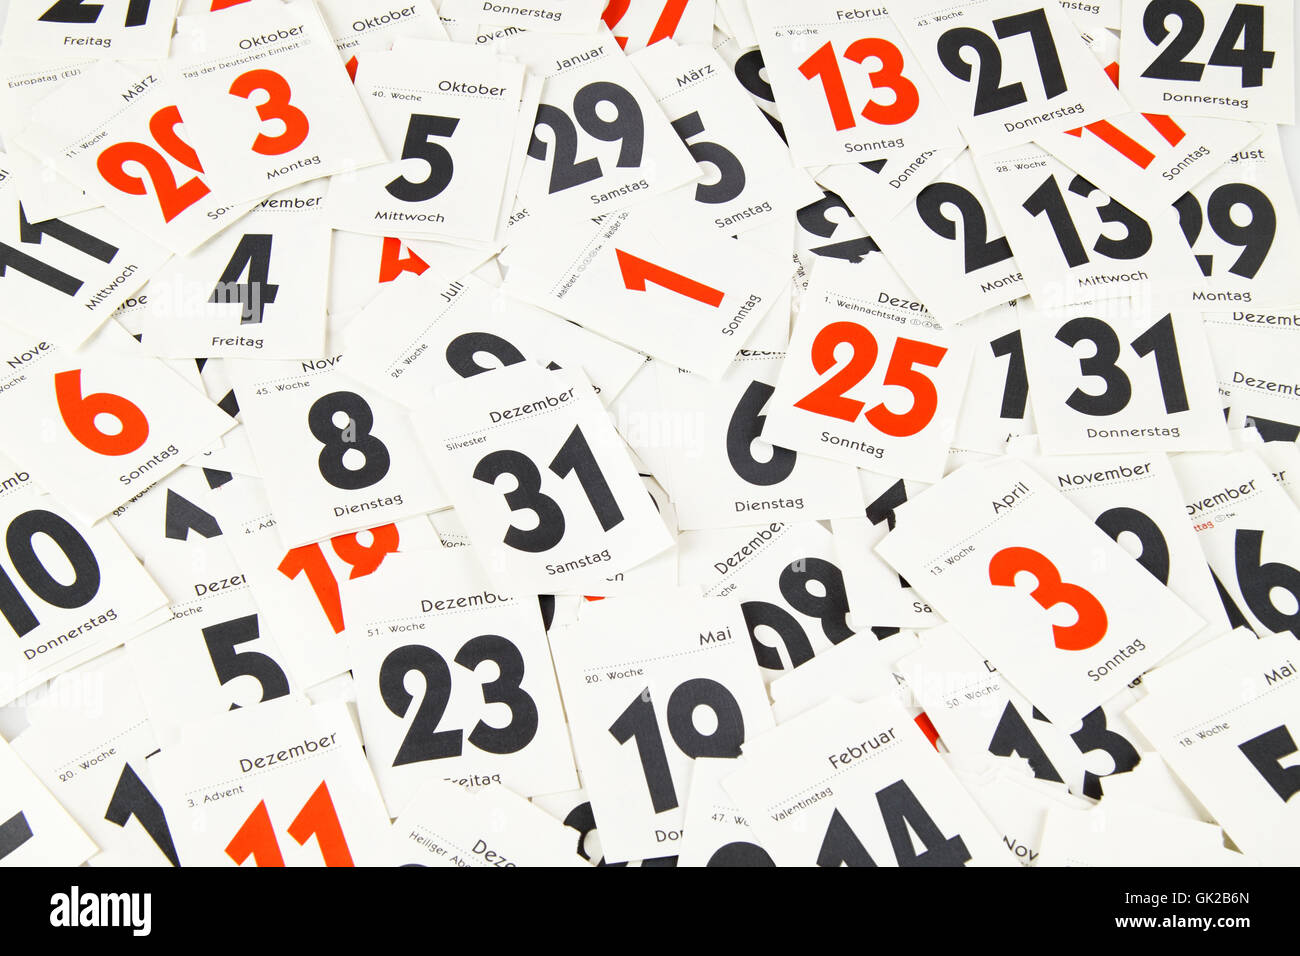 calendar days - Stock Image